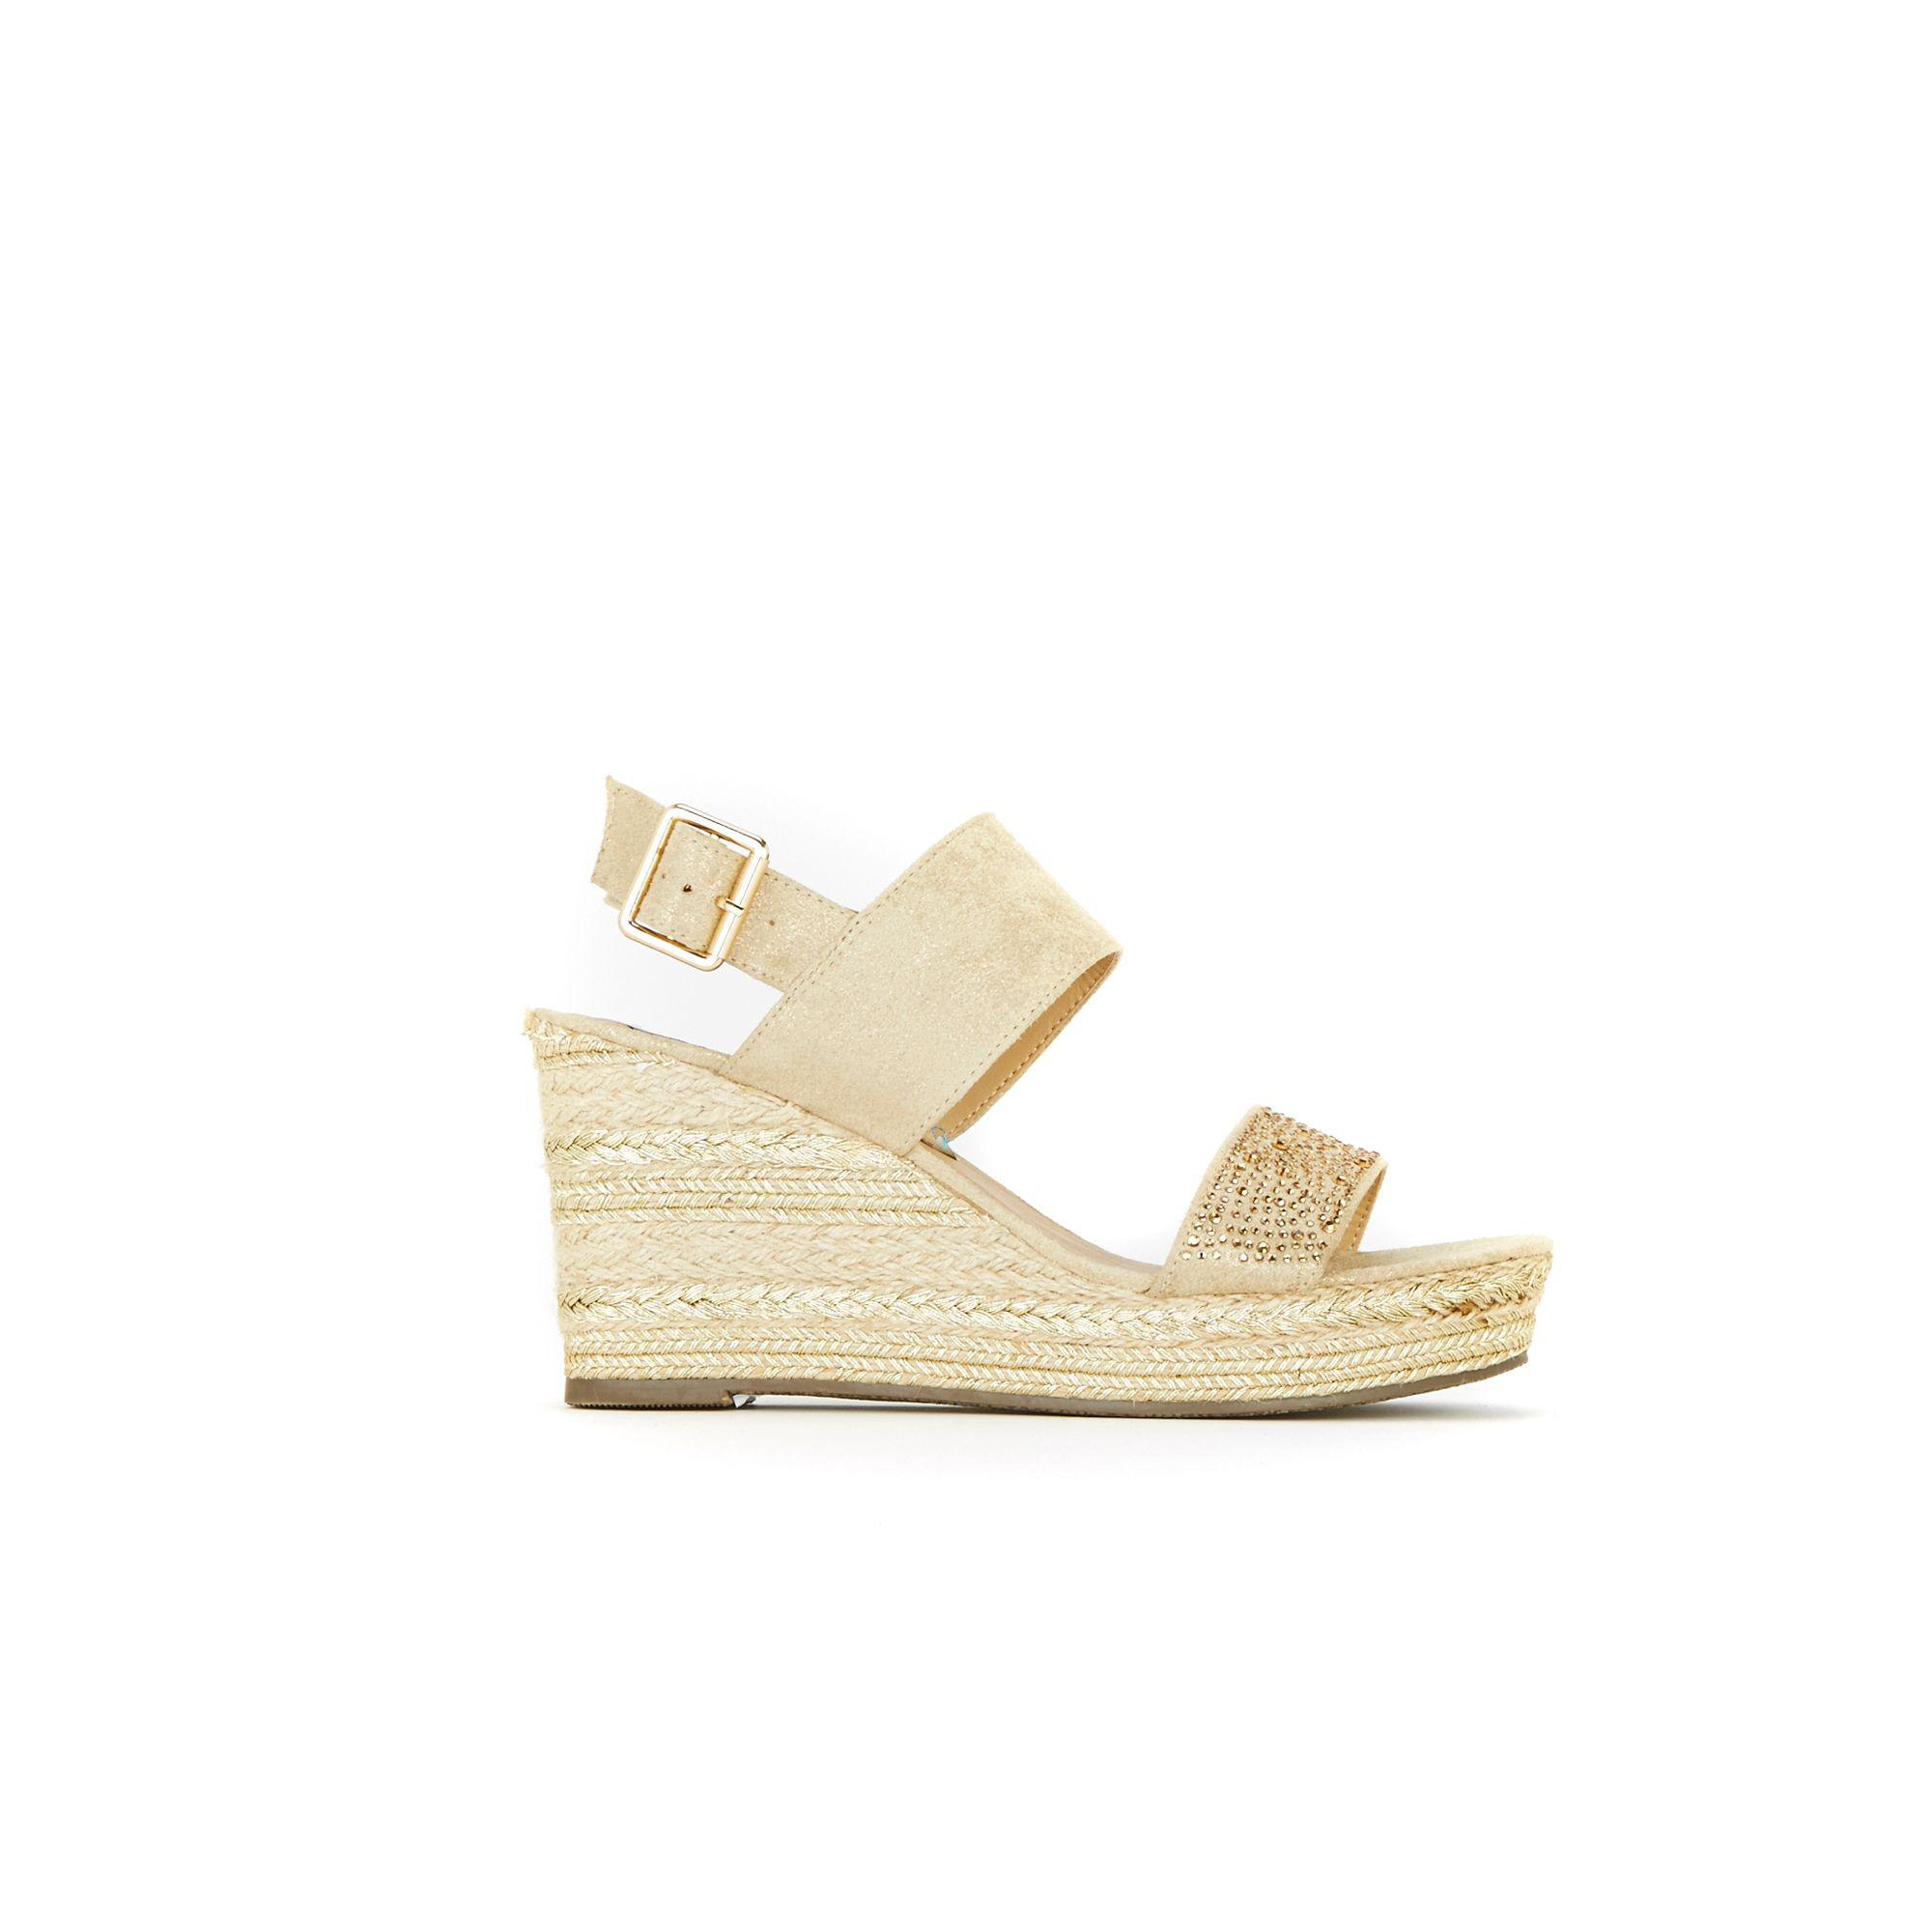 dc35d056e0c4 Wallis Gold Rope Trim Embellished Wedge Sandals in Metallic - Lyst